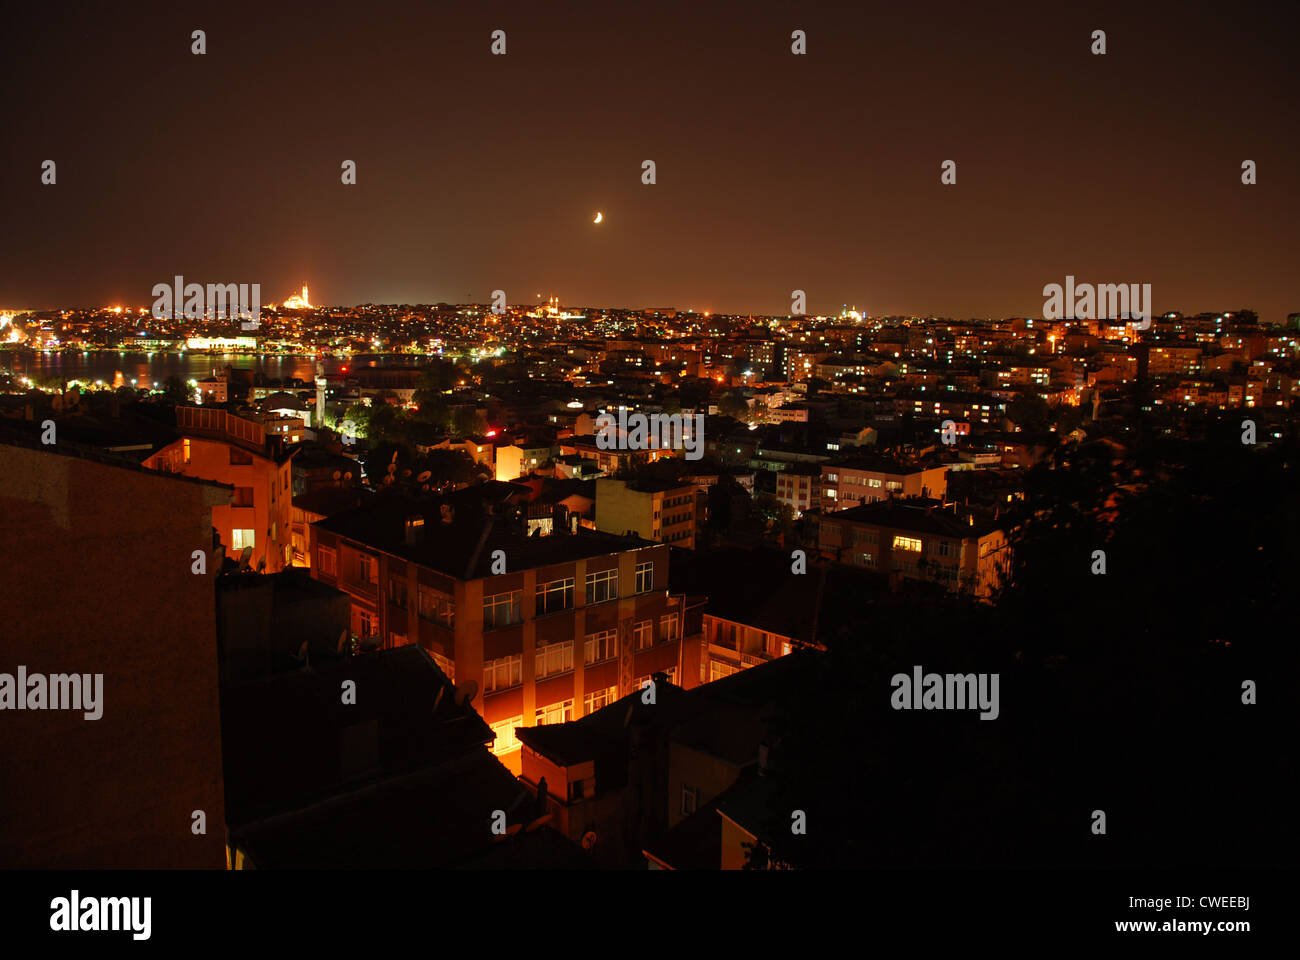 Night time in Istanbul. Picture by Adam Alexander/Alamy - Stock Image